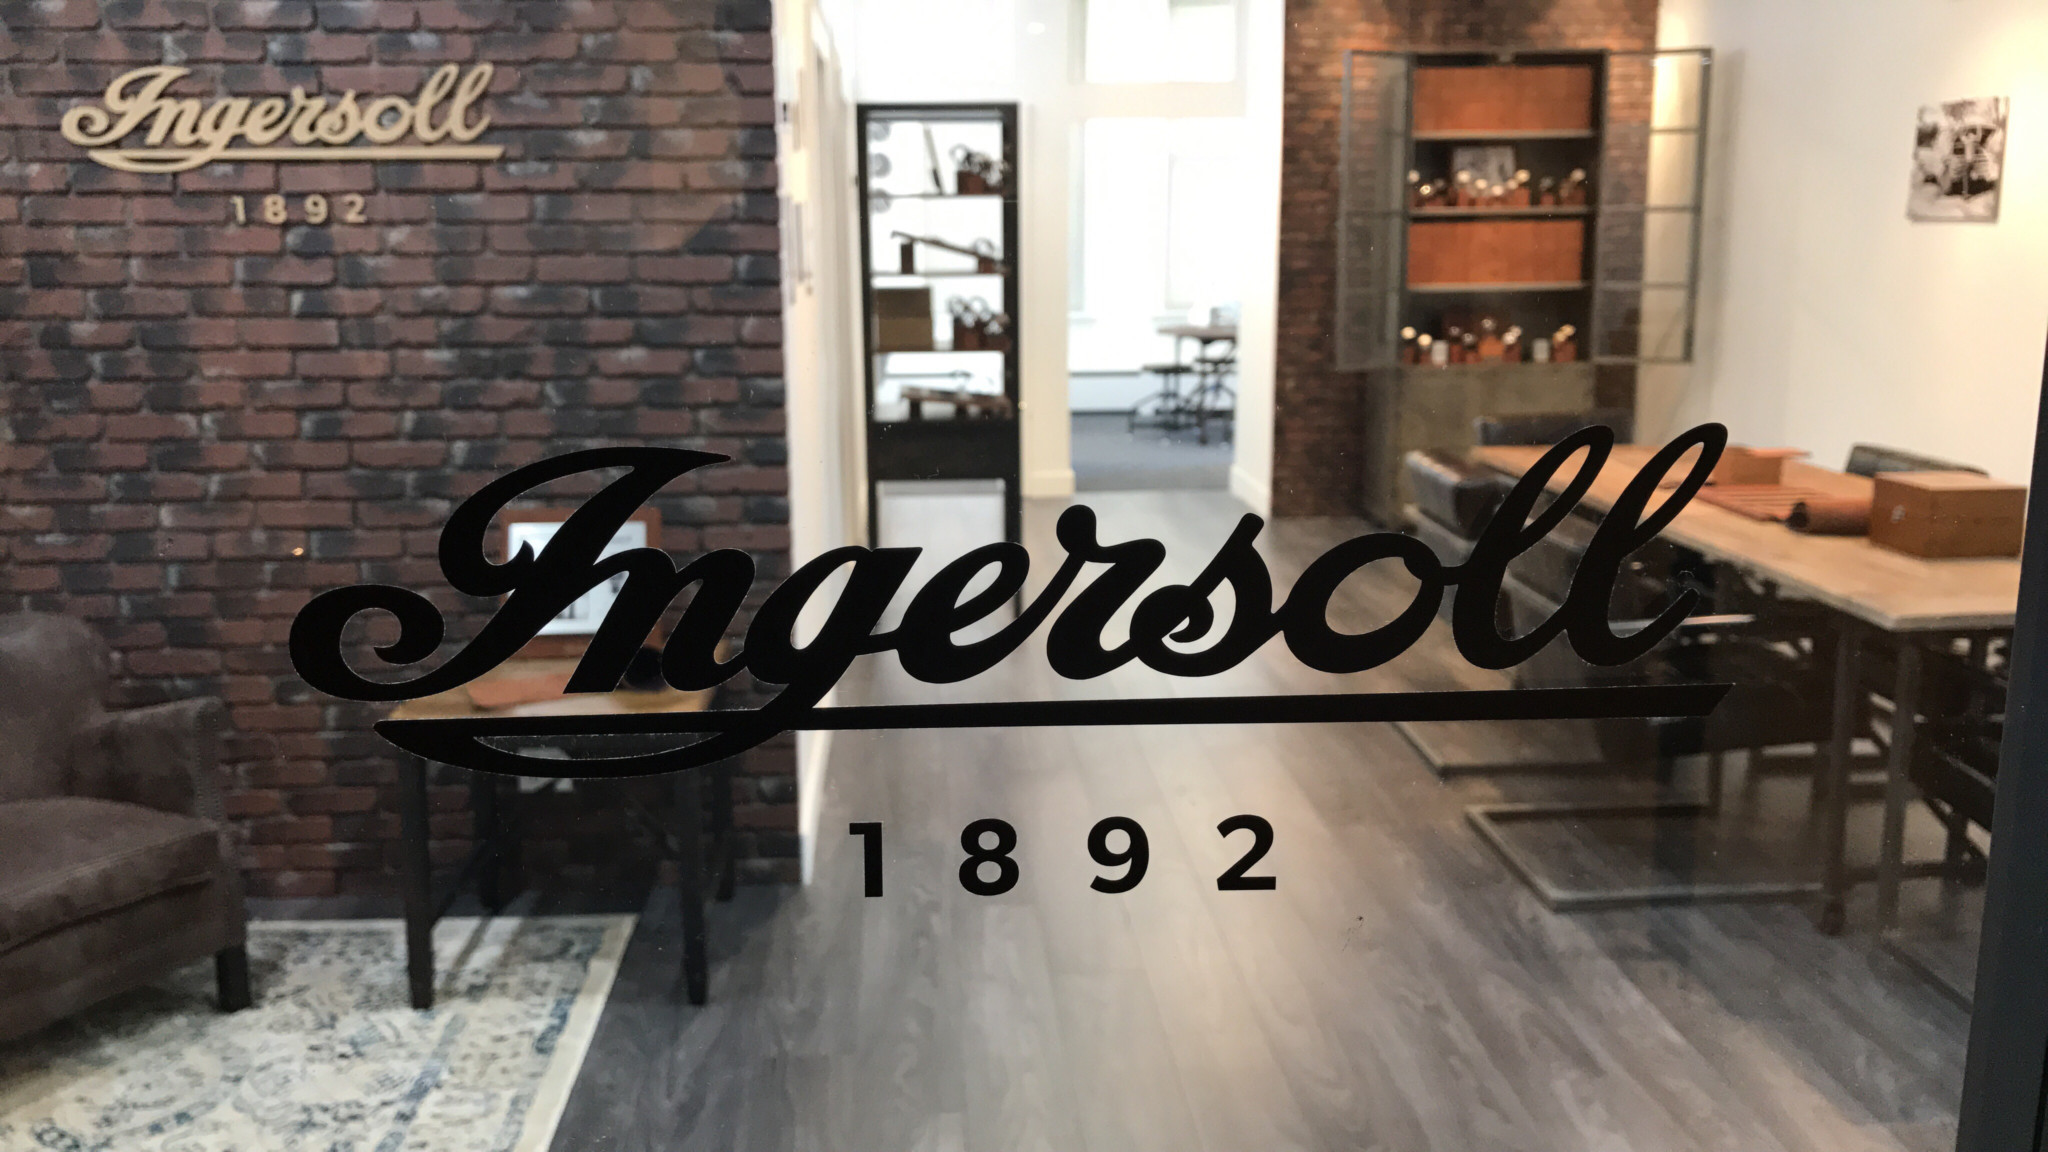 Ingersoll's New York boutique has opened on Manhattan's famous fashion street 5th Avenue, and is being used to showcase the watch brand to retail partners.